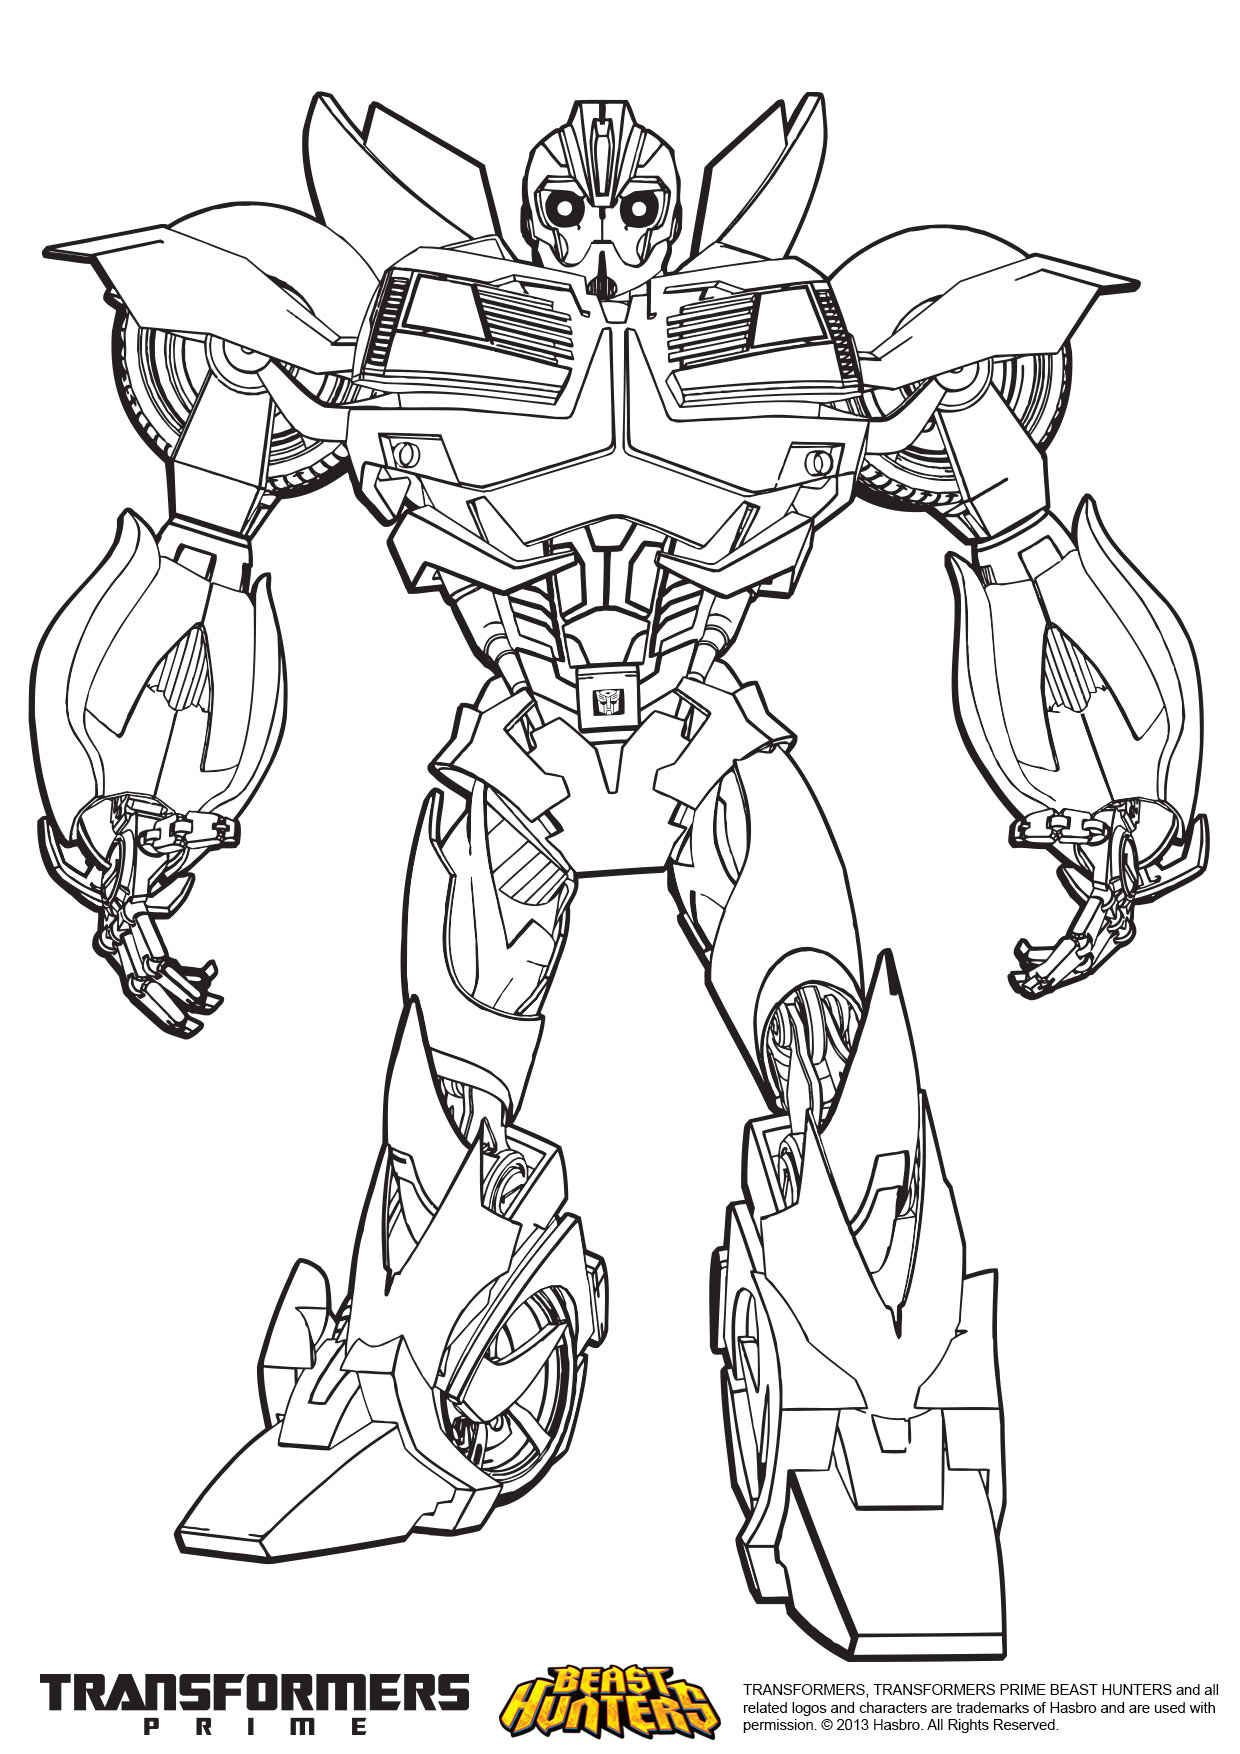 Bumble Bee From Transformers